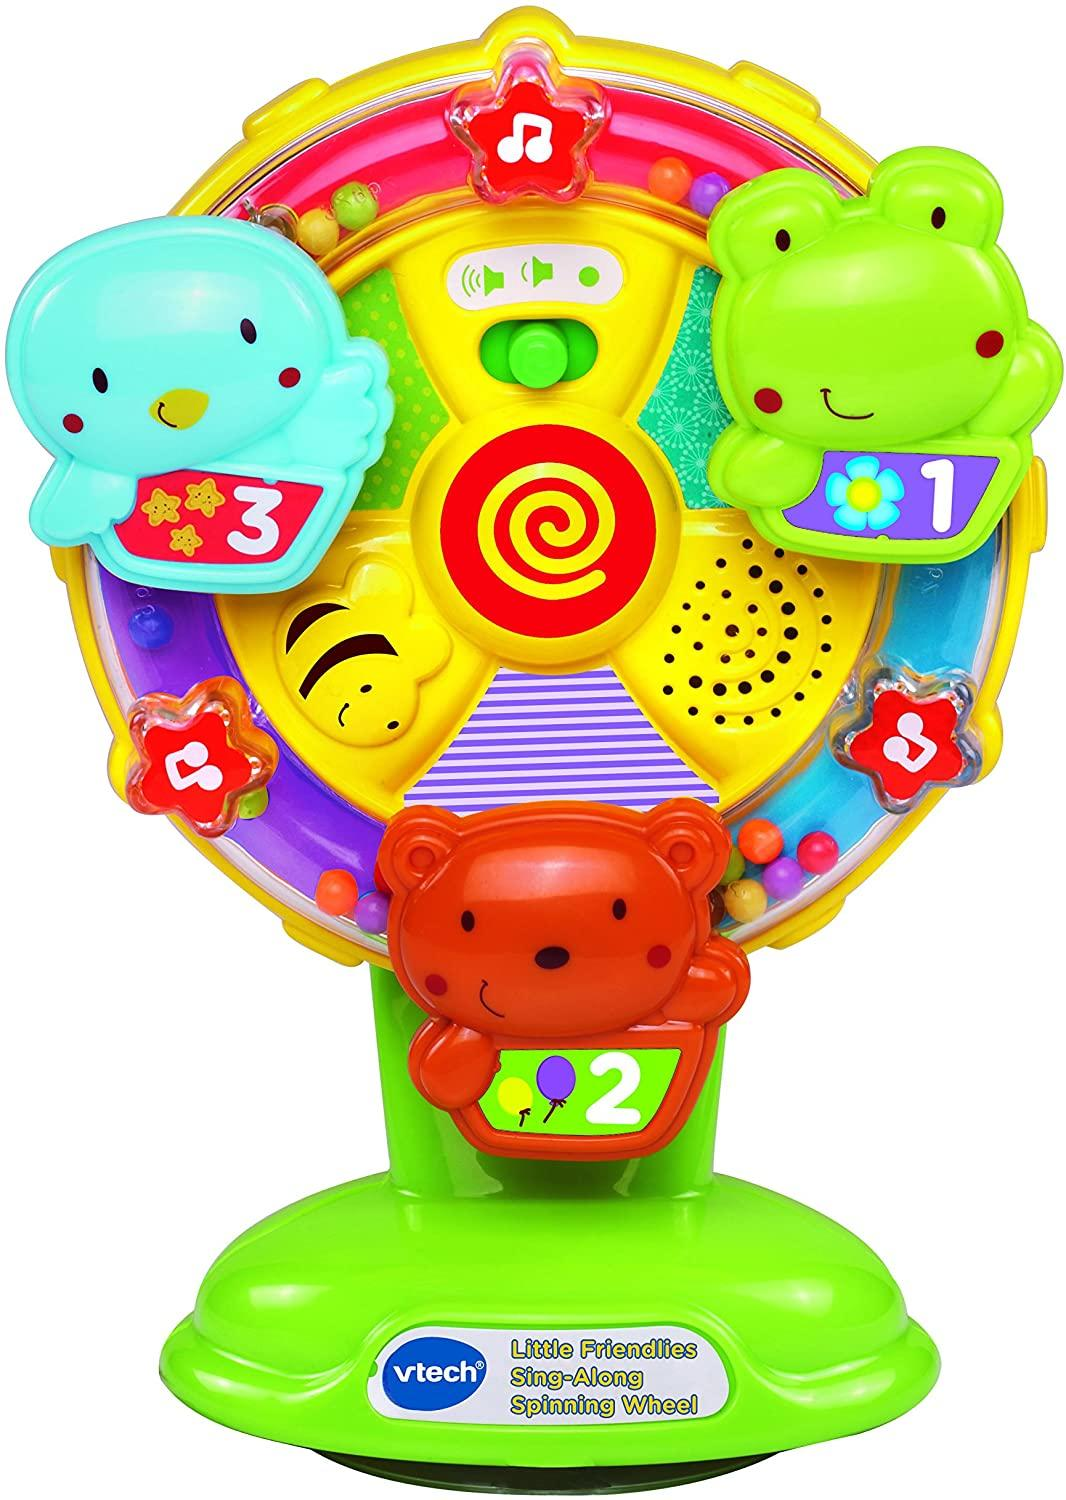 Vtech Little Friendlies Sing Along Wheel Toymaster Ballina